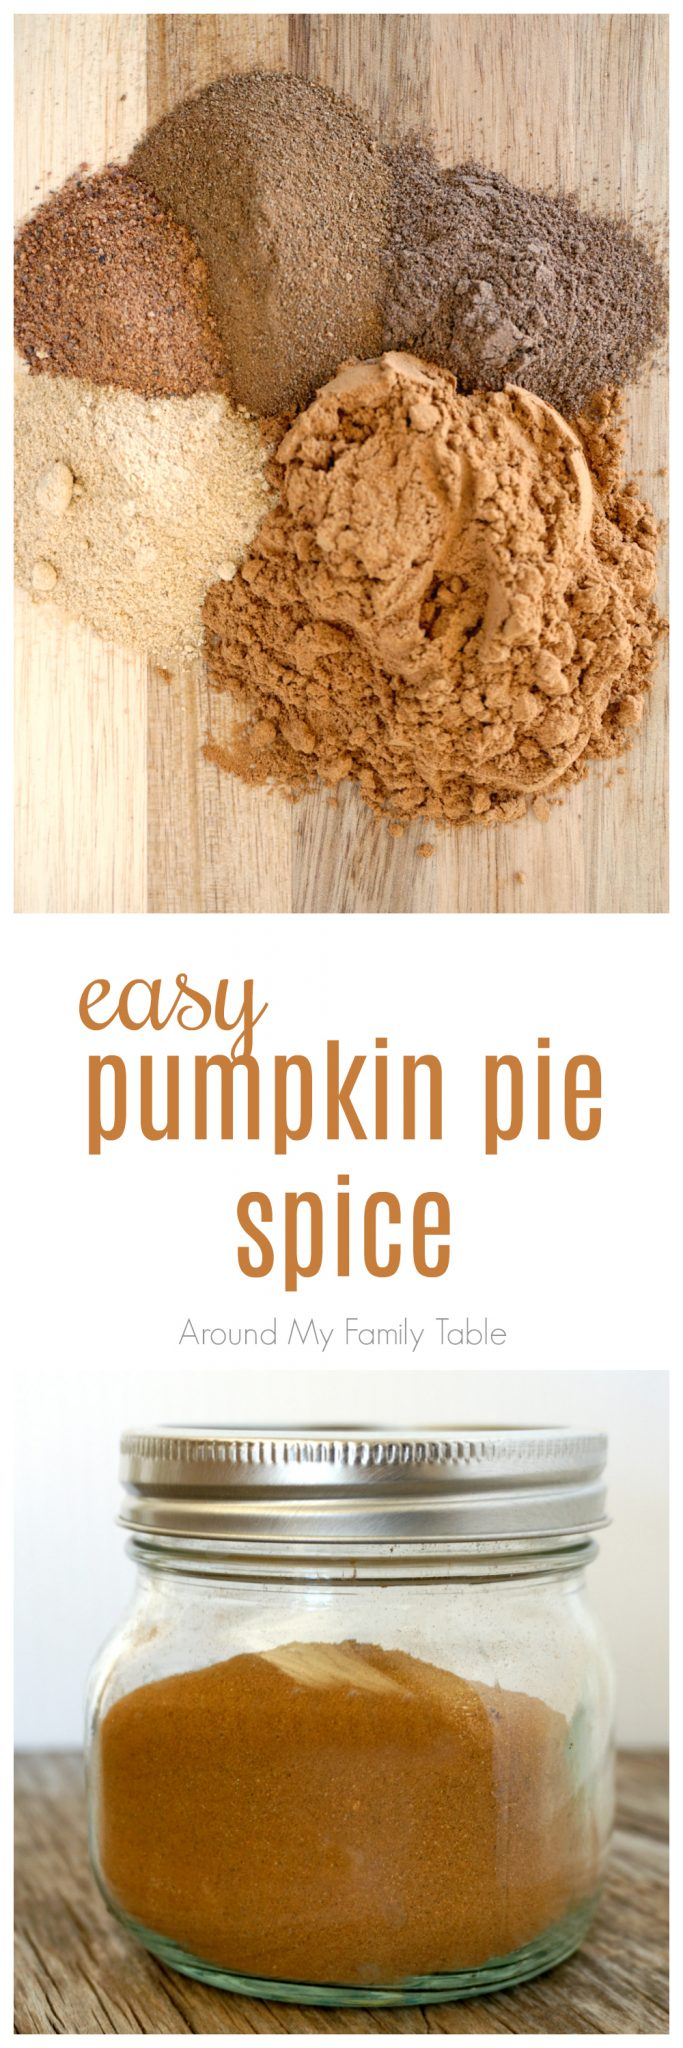 Don't get caught without Pumpkin Pie Spice this holiday season. You can make up this easy Pumpkin Pie Spice Recipe in small batches (or big ones) from spices you probably already have on hand.